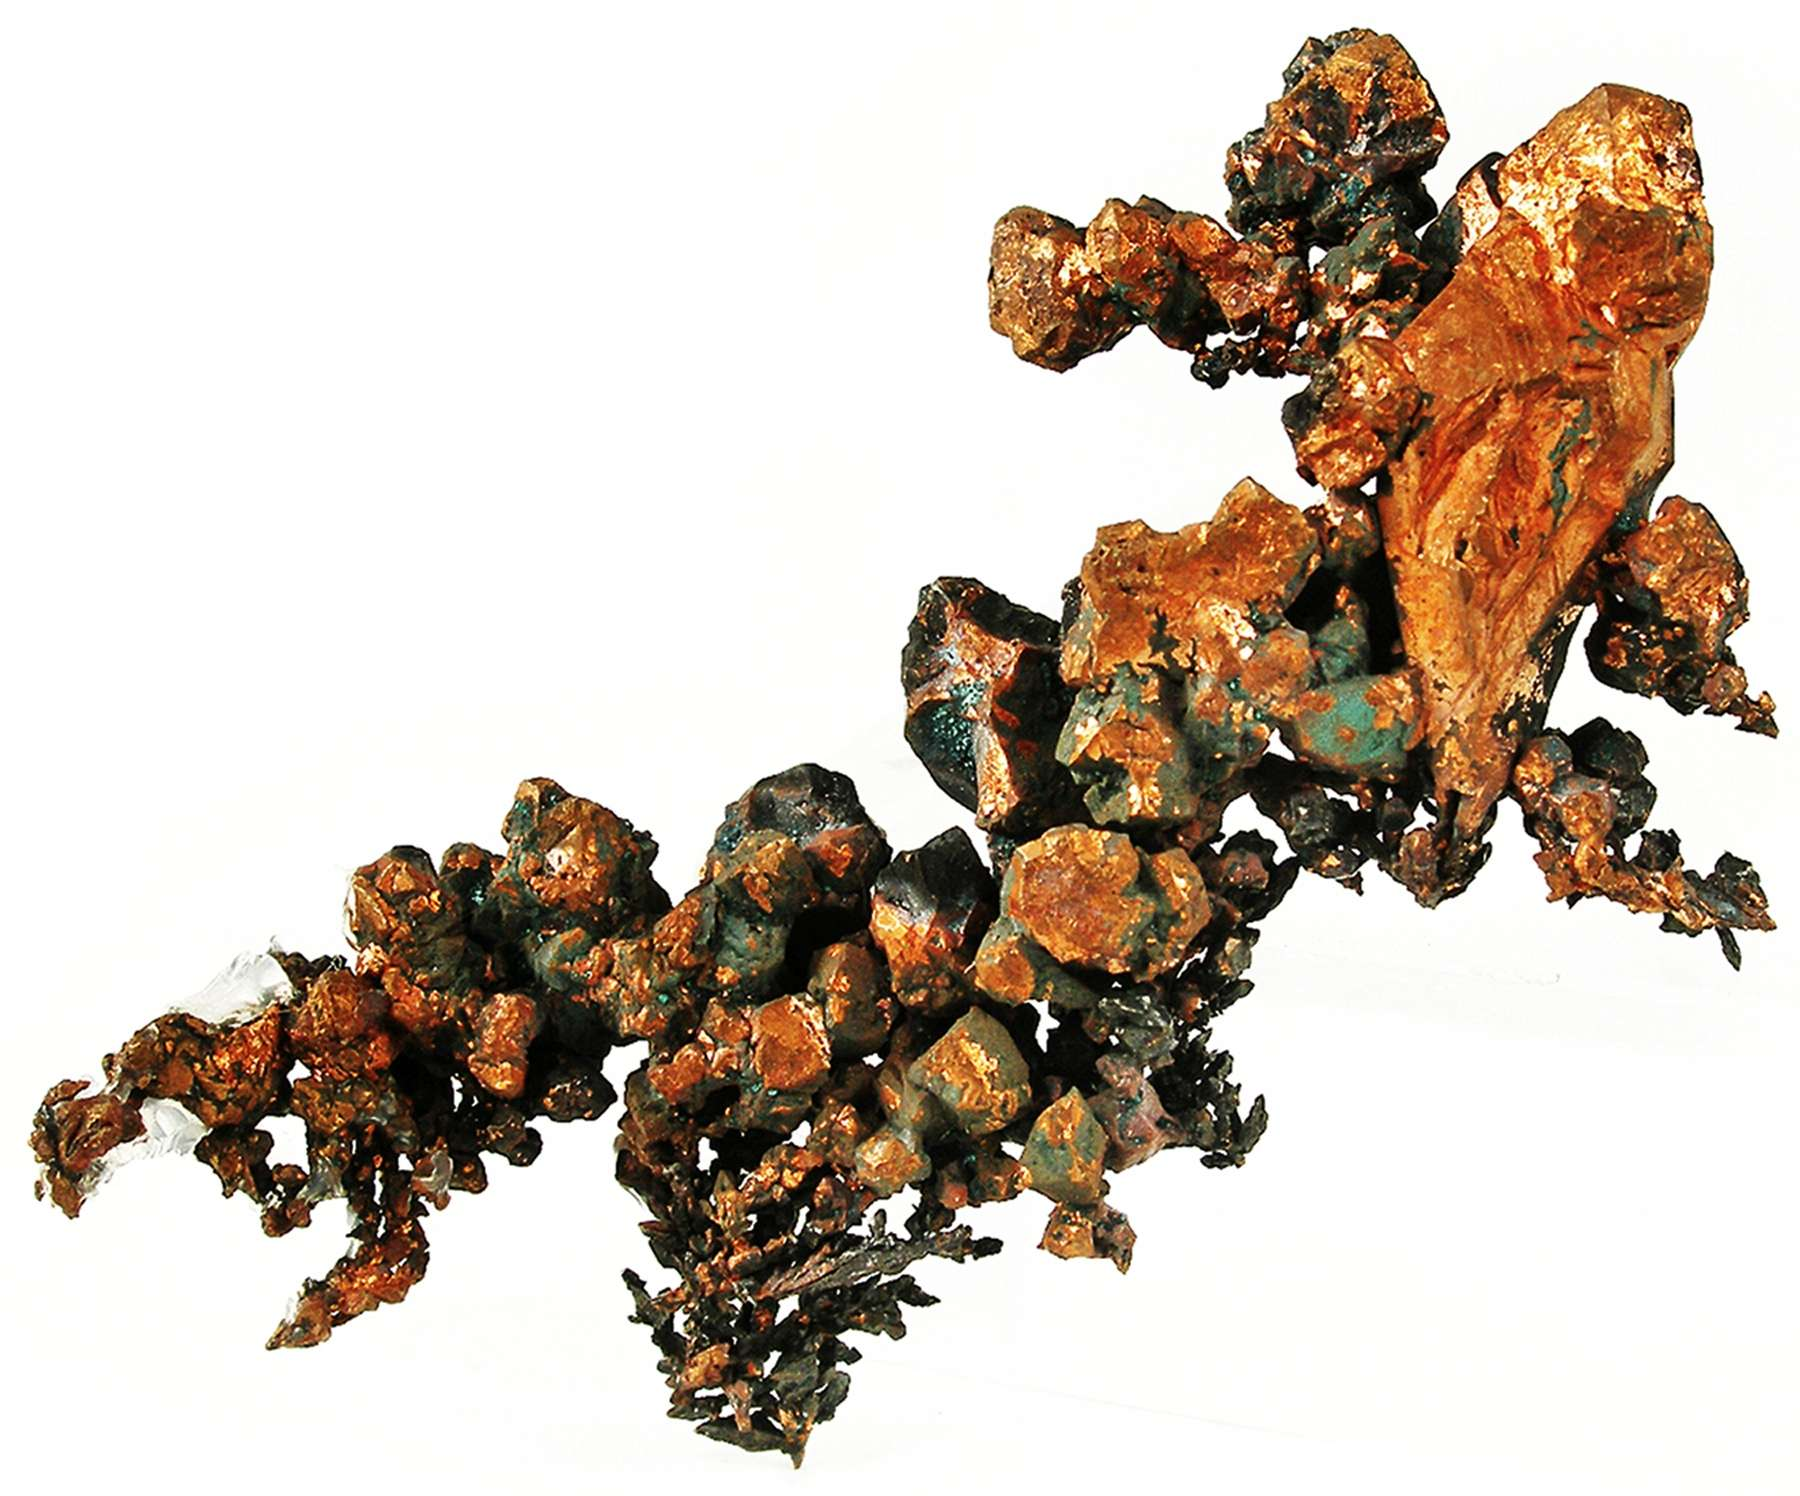 A stack formed copper crystals culminates exquisite doubly terminated